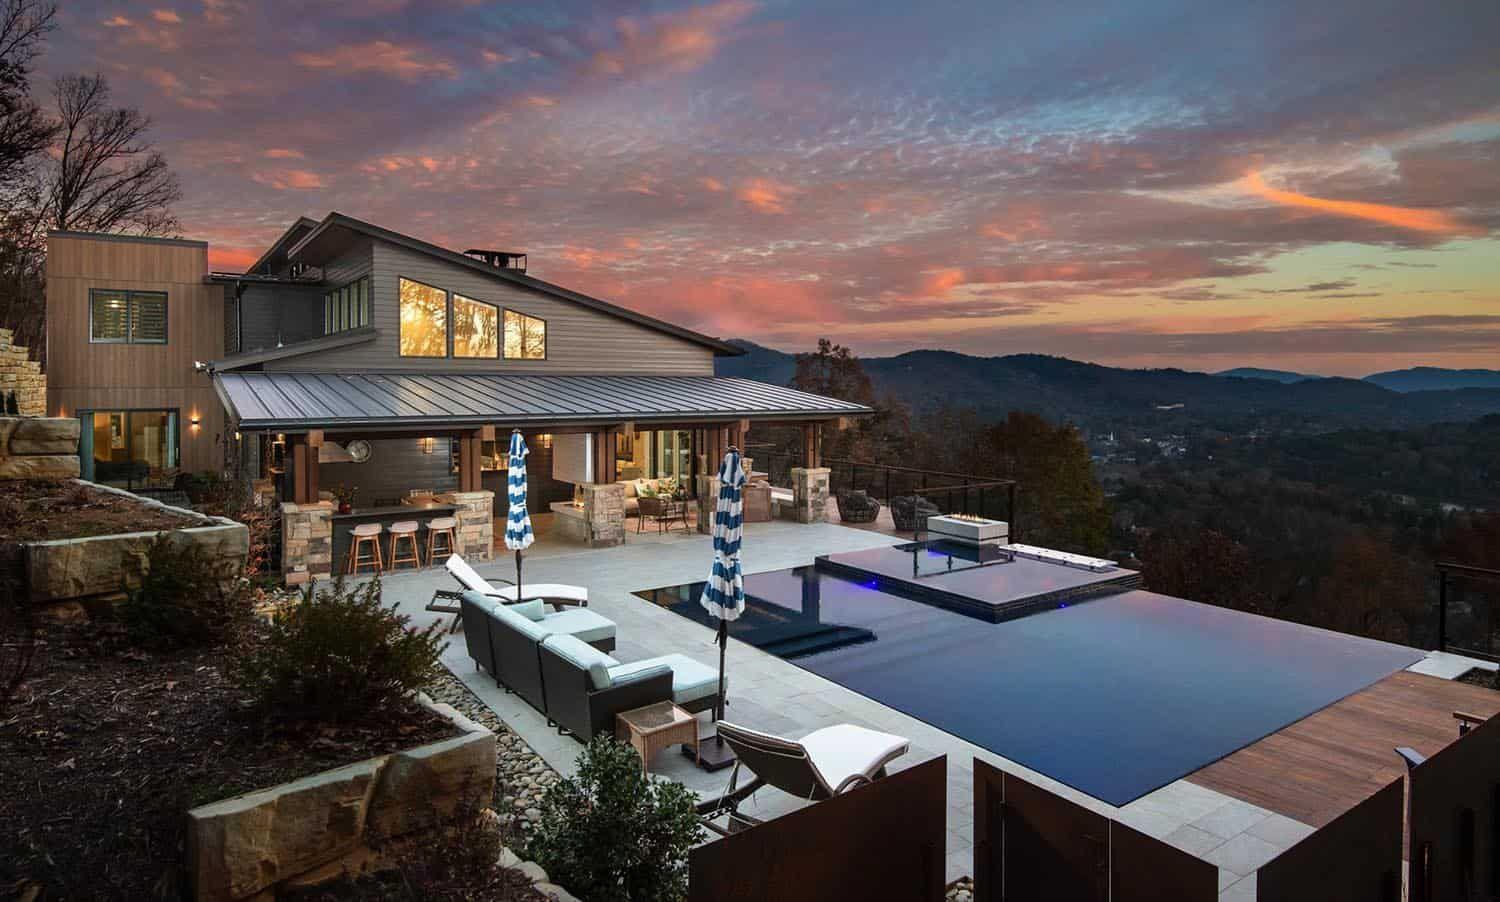 Beautifully Inspiring Mountain Home Nestled In The Blue Ridge Mountains In 2020 Mountain Home Pool Remodel Pool Houses